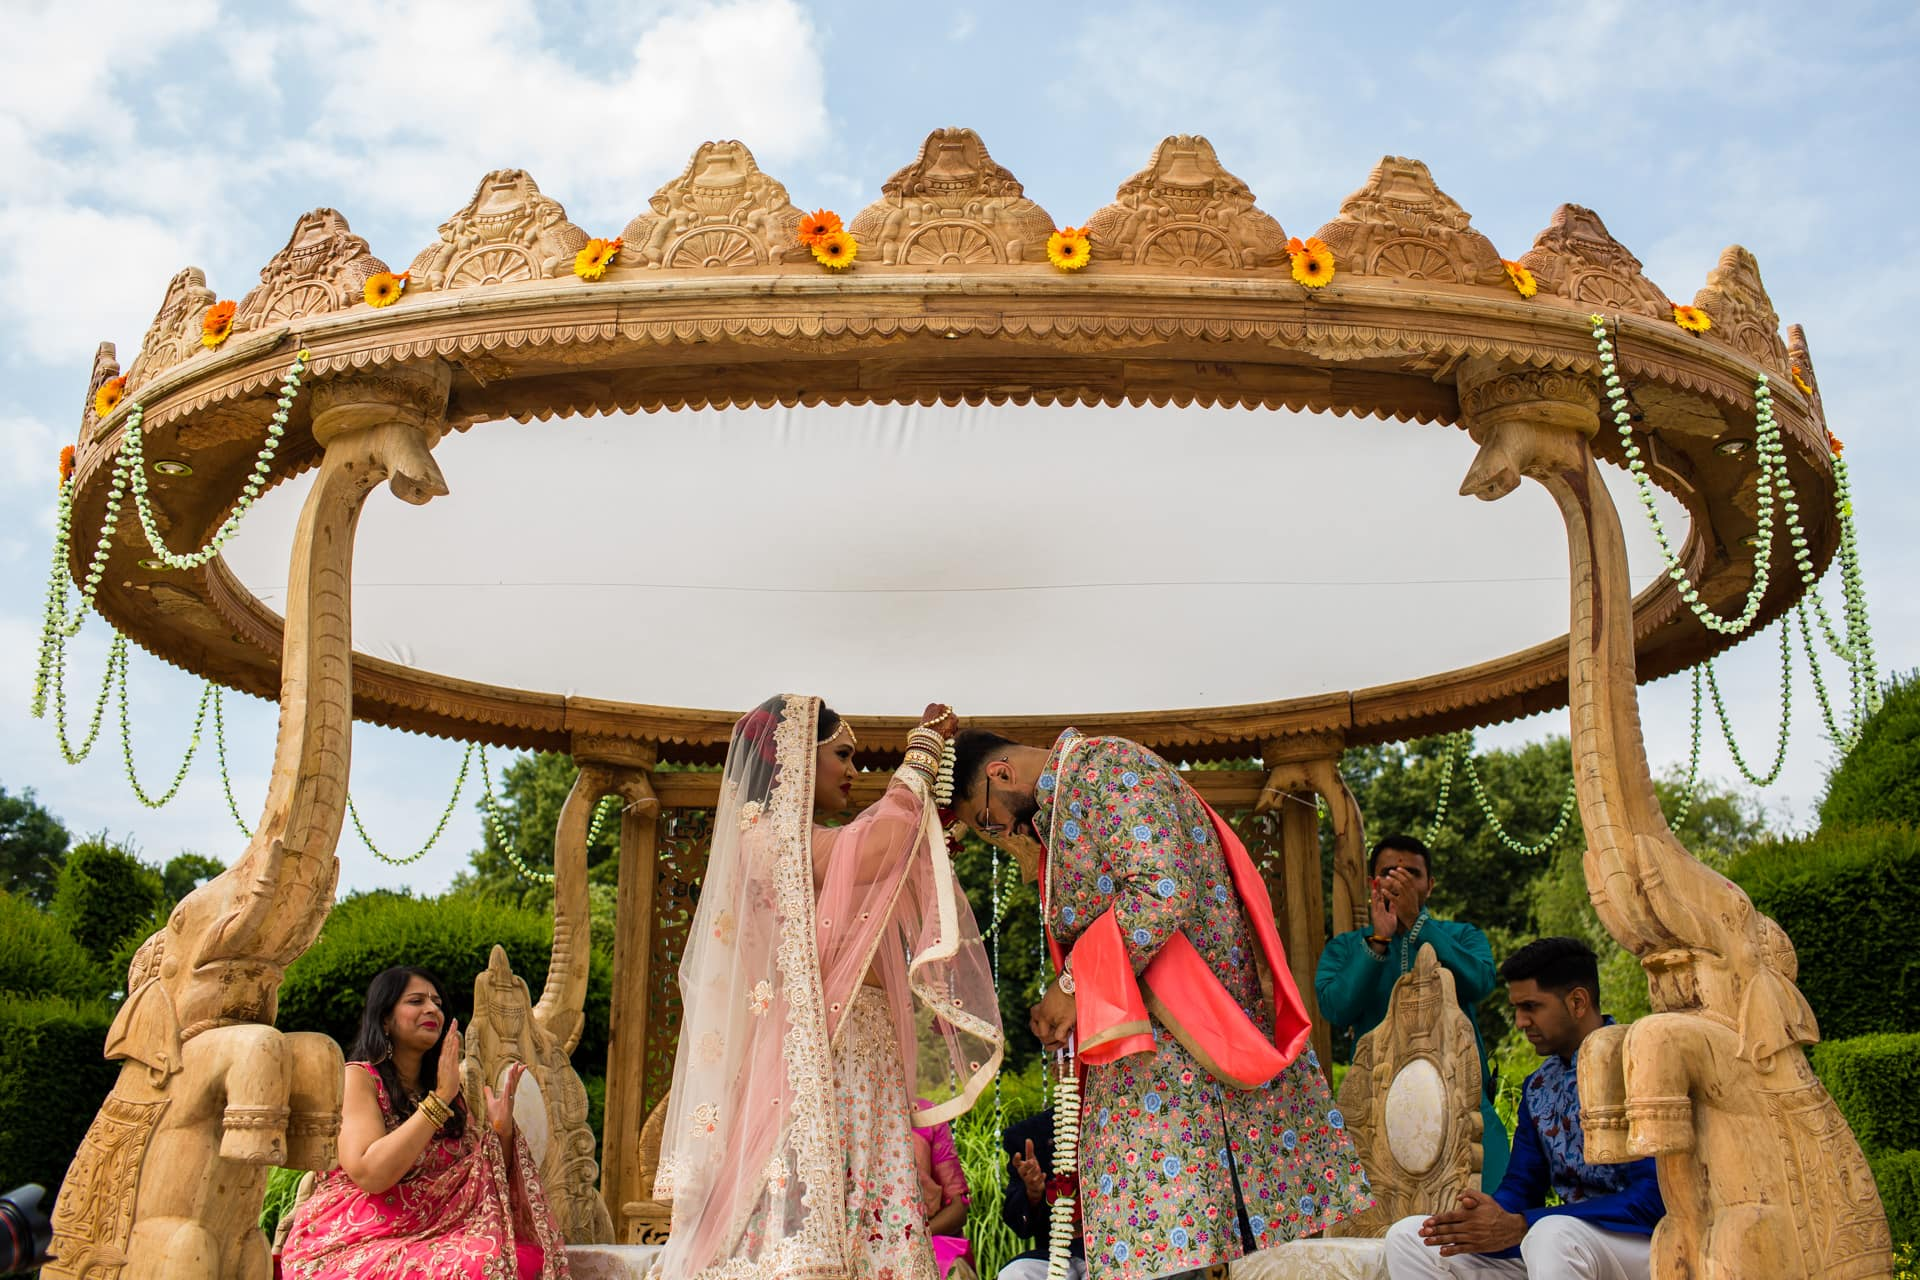 Garlanding ceremony during Gujarati wedding